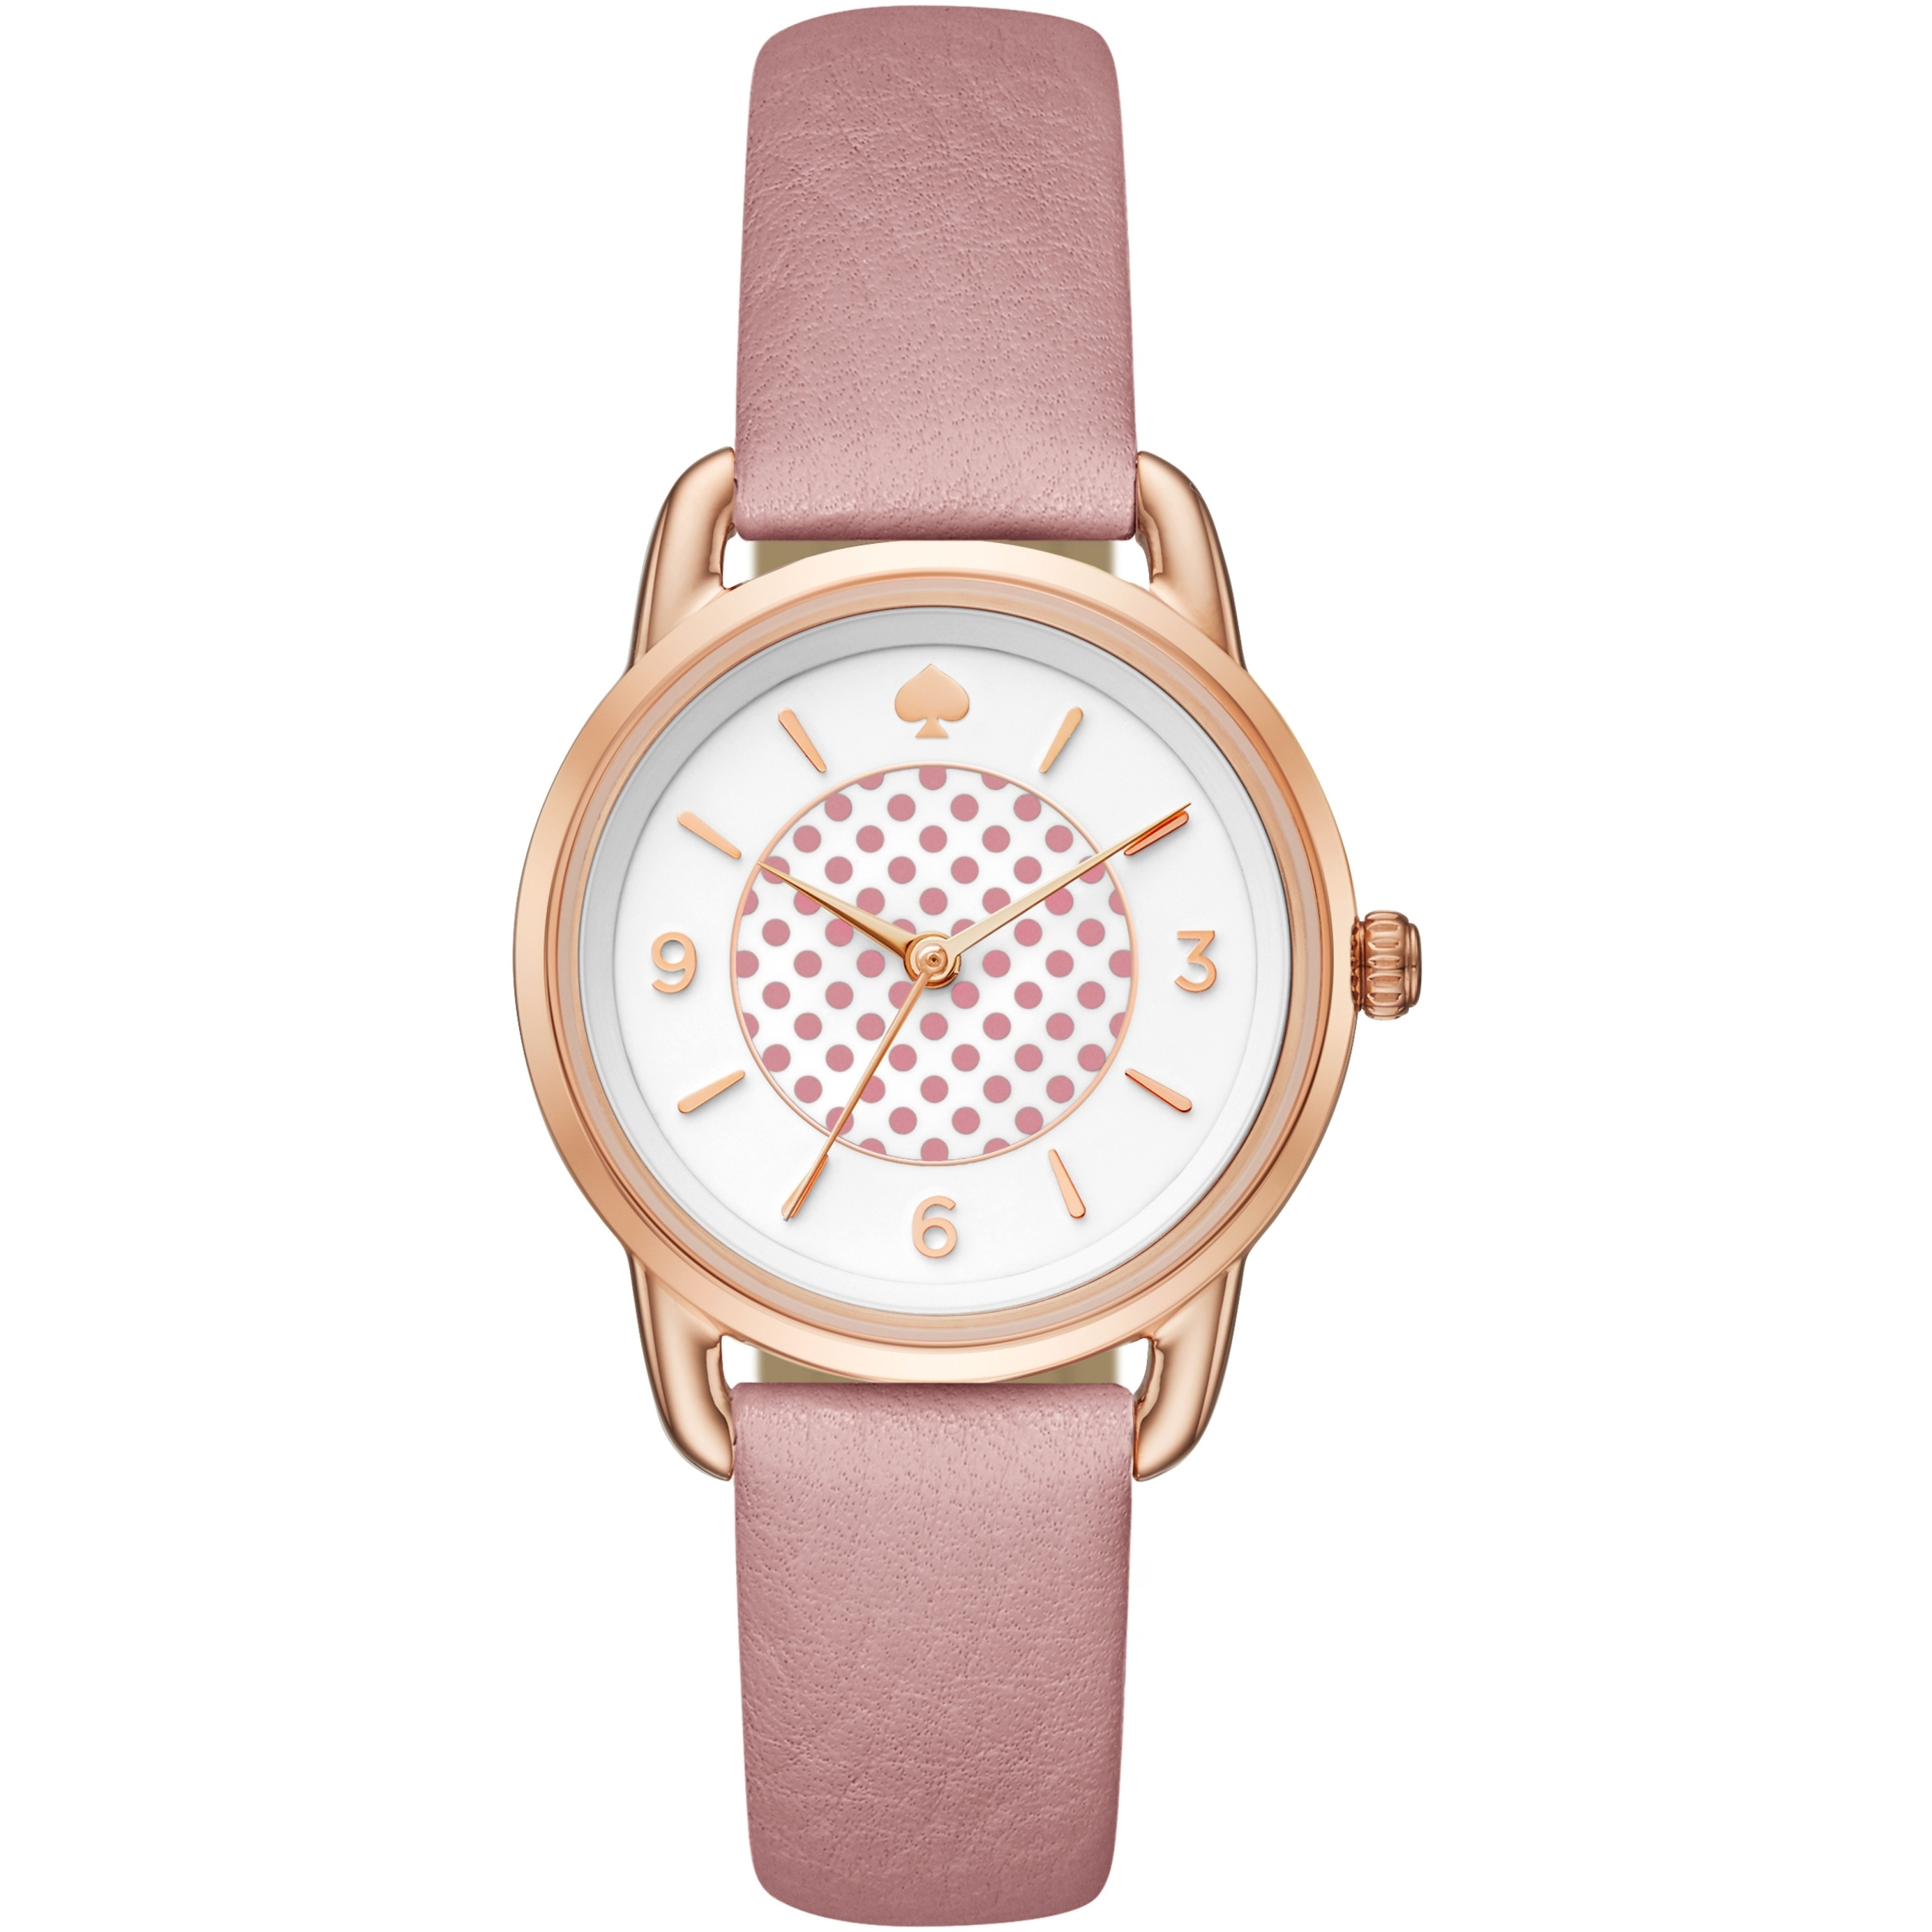 watch peach original gent unisex miami swatch press watches watchshop com